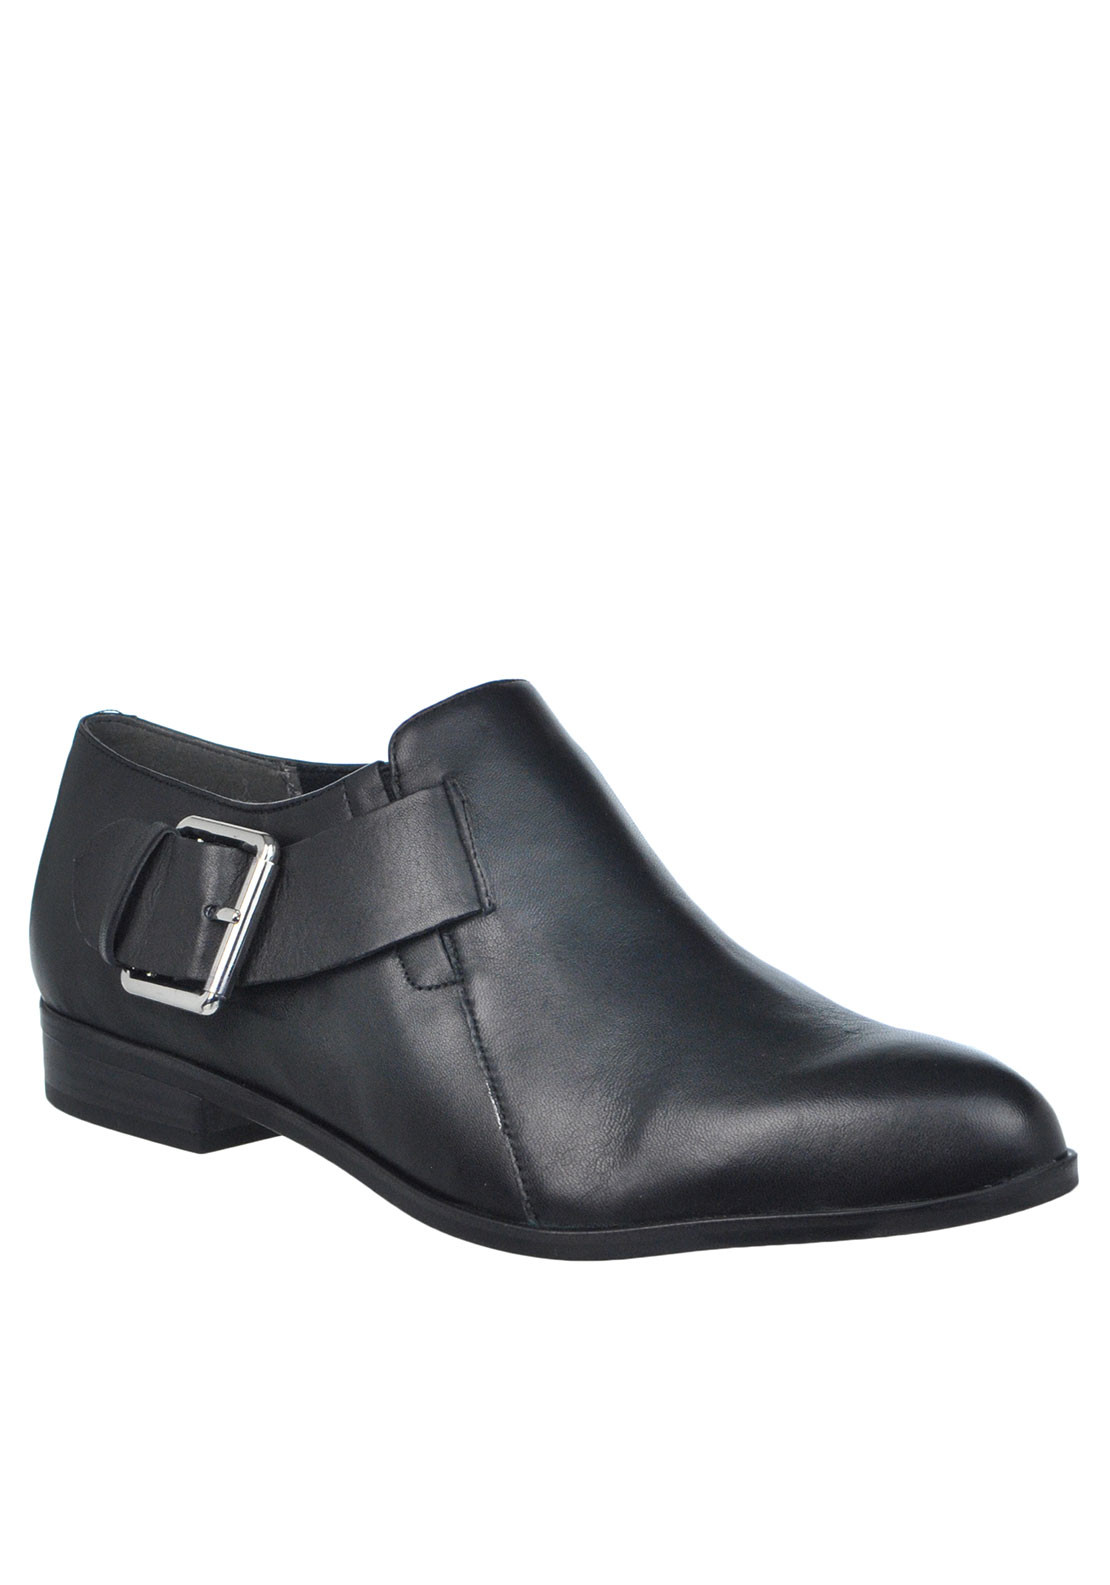 Tamaris Leather Buckle Detail Shoes, Black